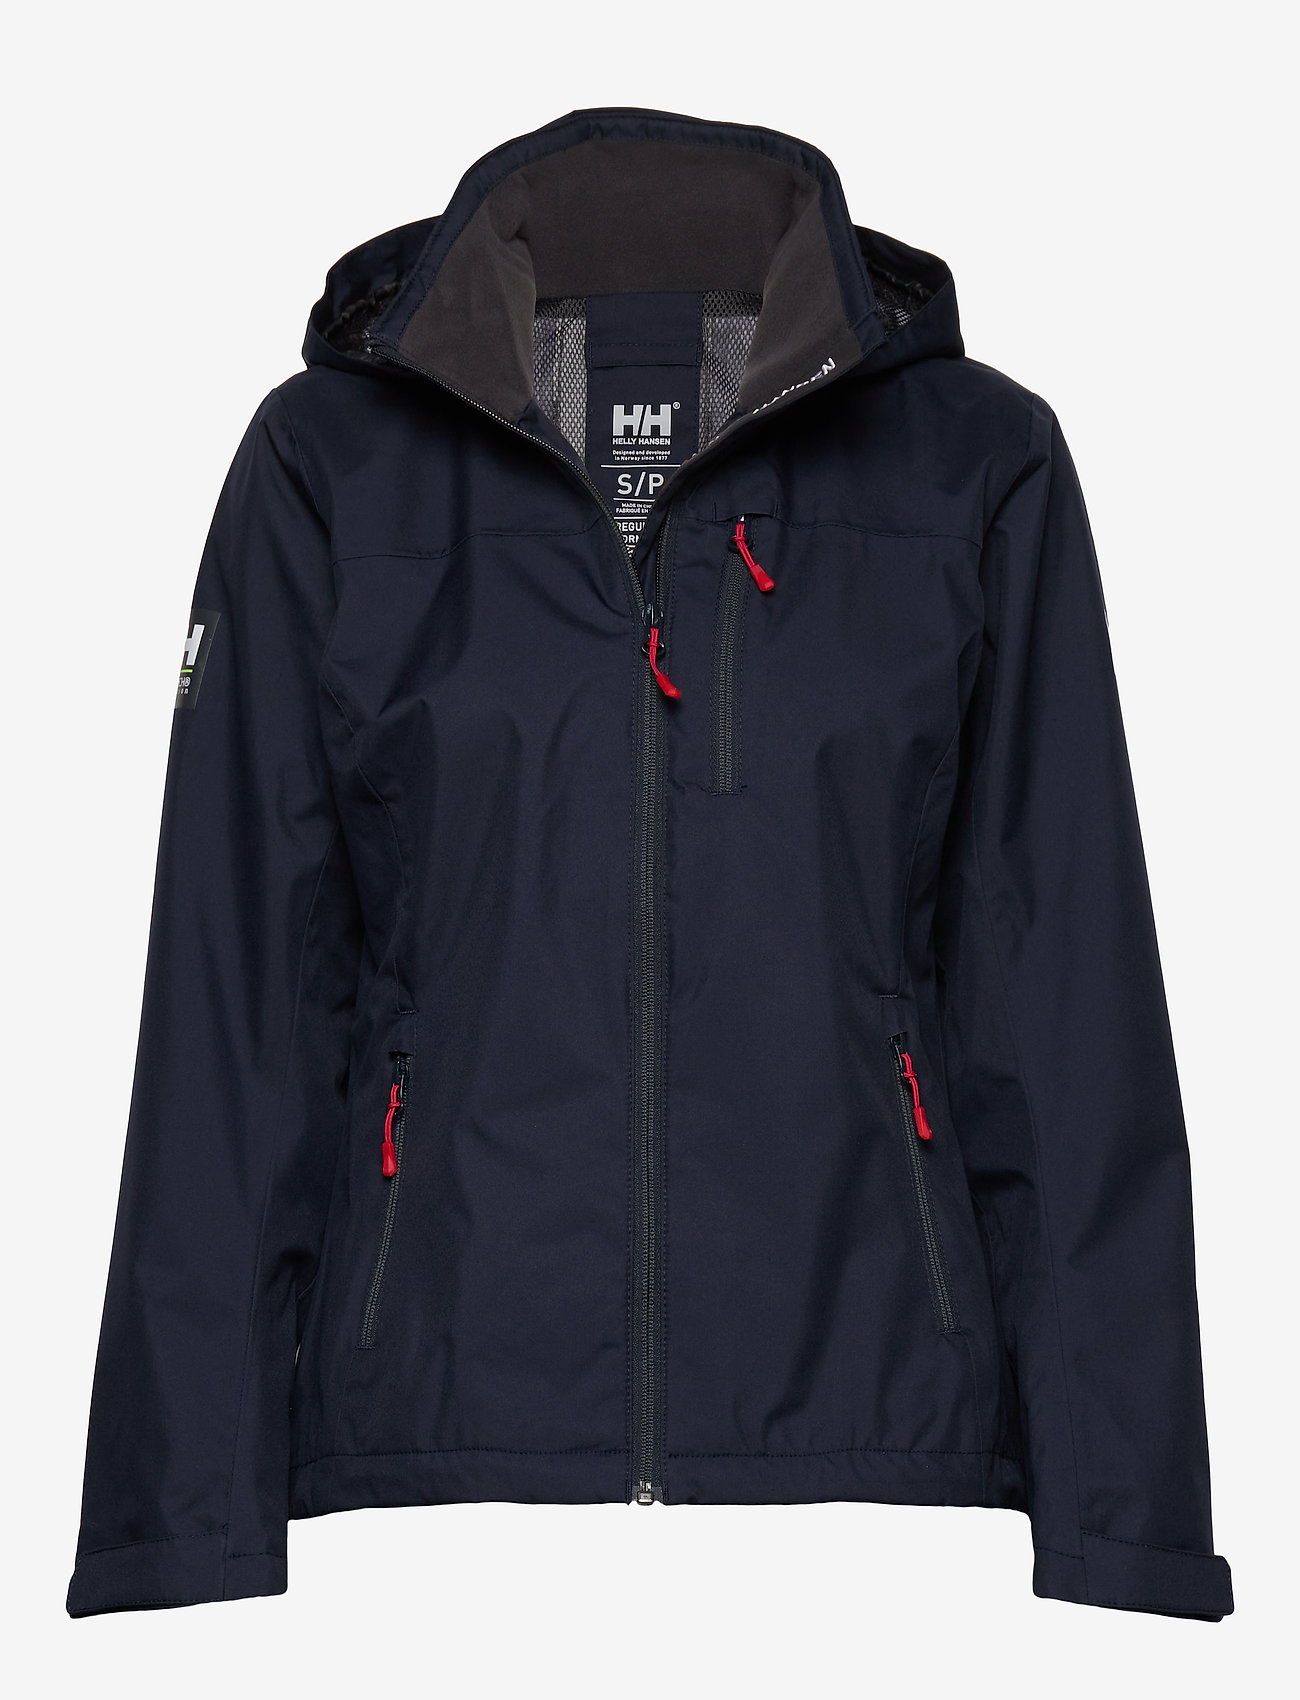 Helly Hansen - W CREW HOODED JACKET - ulkoilu- & sadetakit - 598 navy - 1